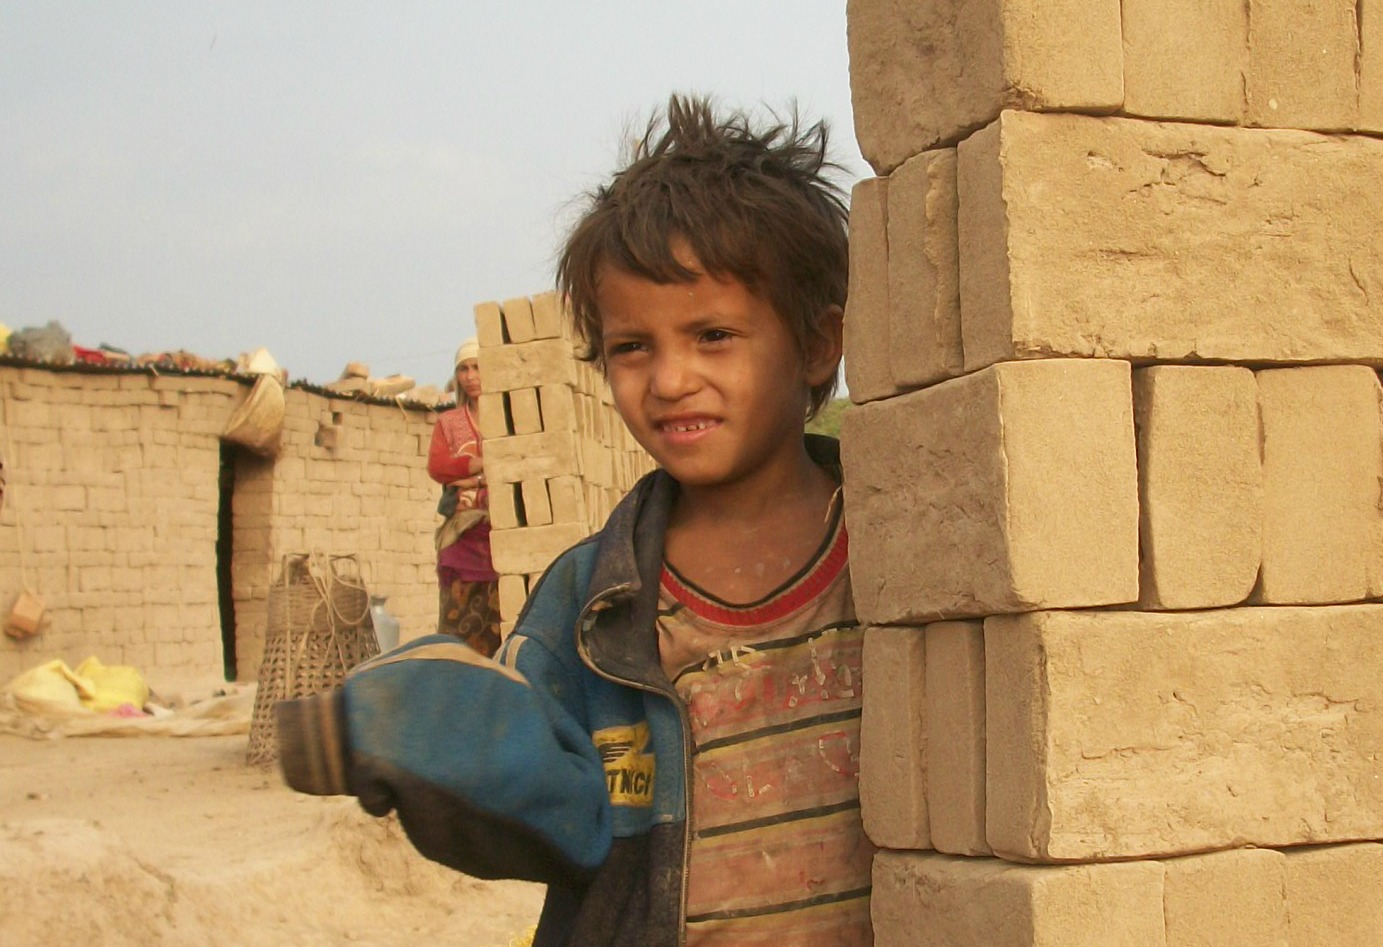 thesis on child labor in nepal Essay on child labor in nepal lifts september 30, 2018 america salad bowl essay writing to communicate paragraphs and essays second edition the best day of my life essay 200 words speech the world before her documentary review essay, 4 page essay on basketball seven samurai essay.